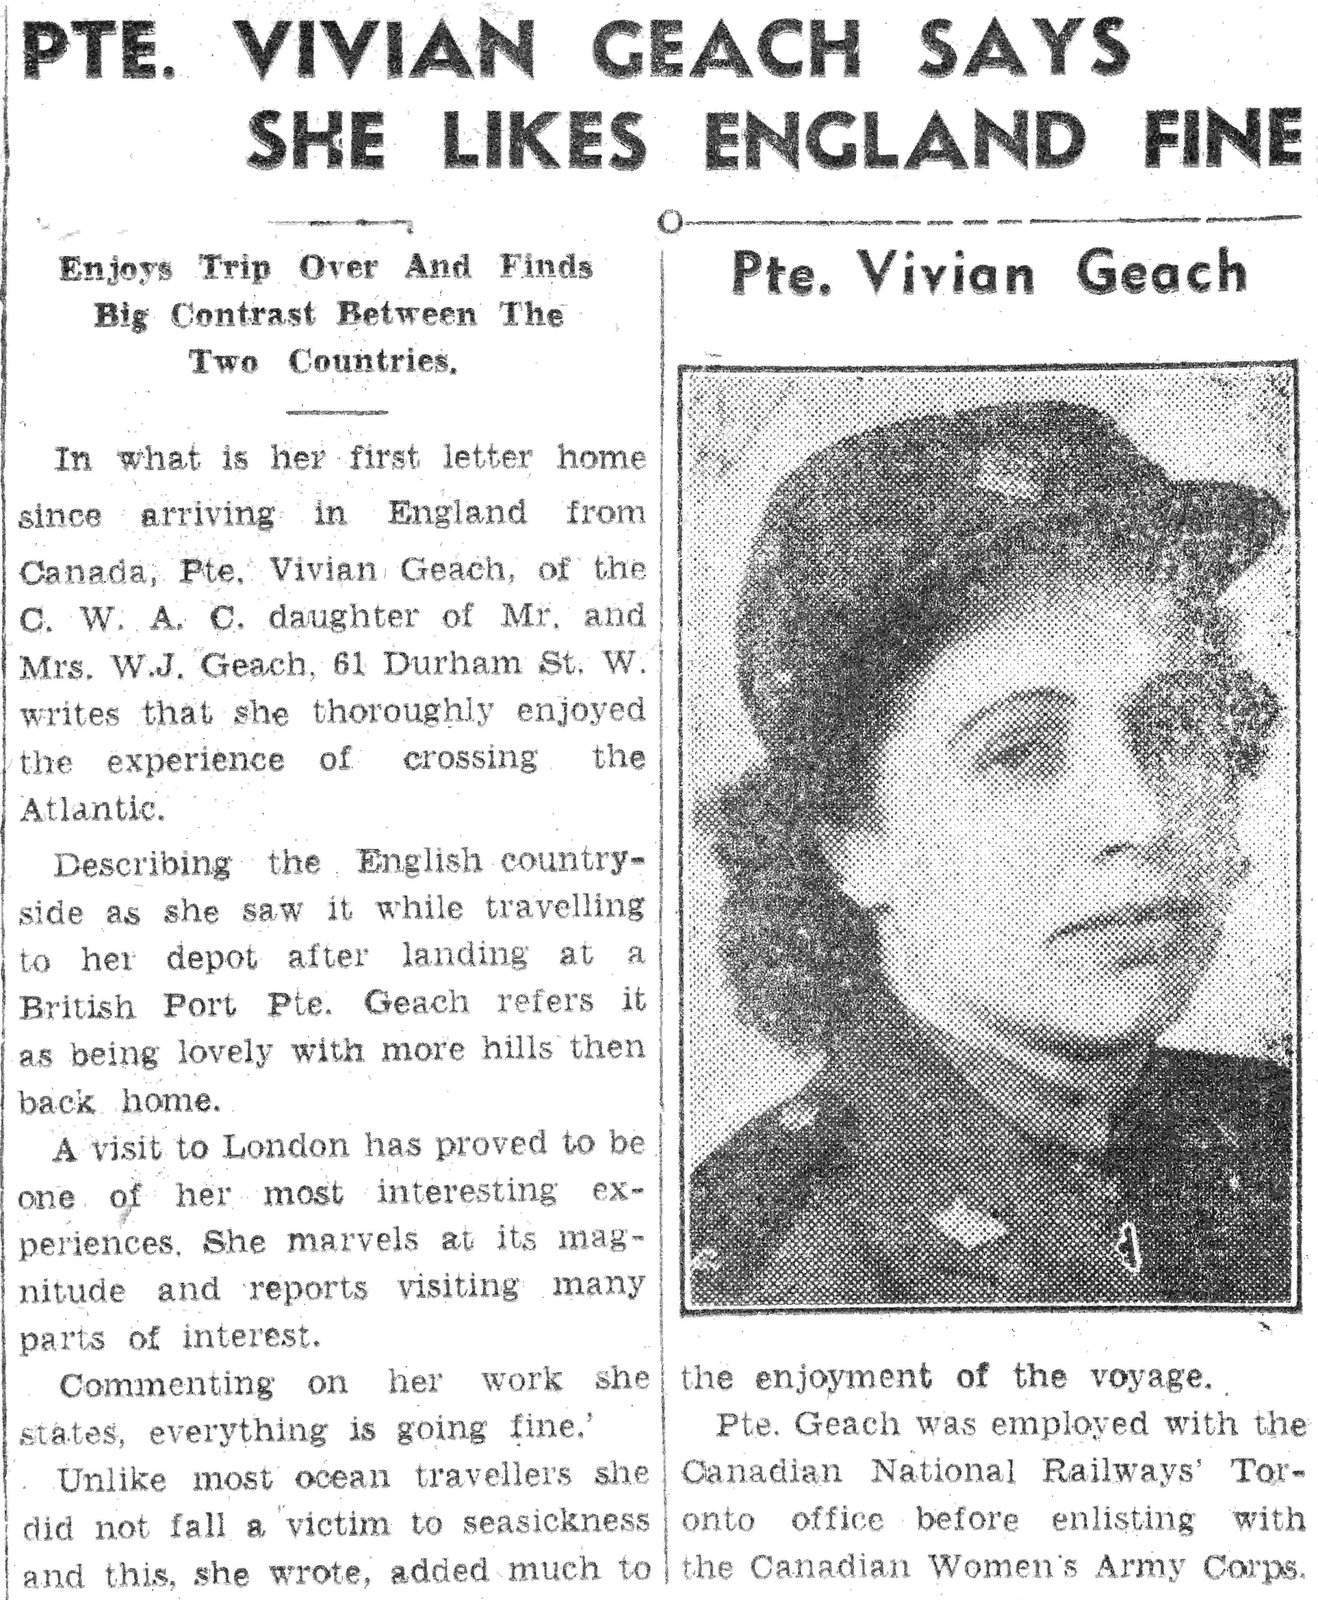 """Pte. Vivian Geach says she likes England fine"" from the Lindsay Post, August 14 1944. Courtesy the Kawartha Lakes Public Library Digital Archive."